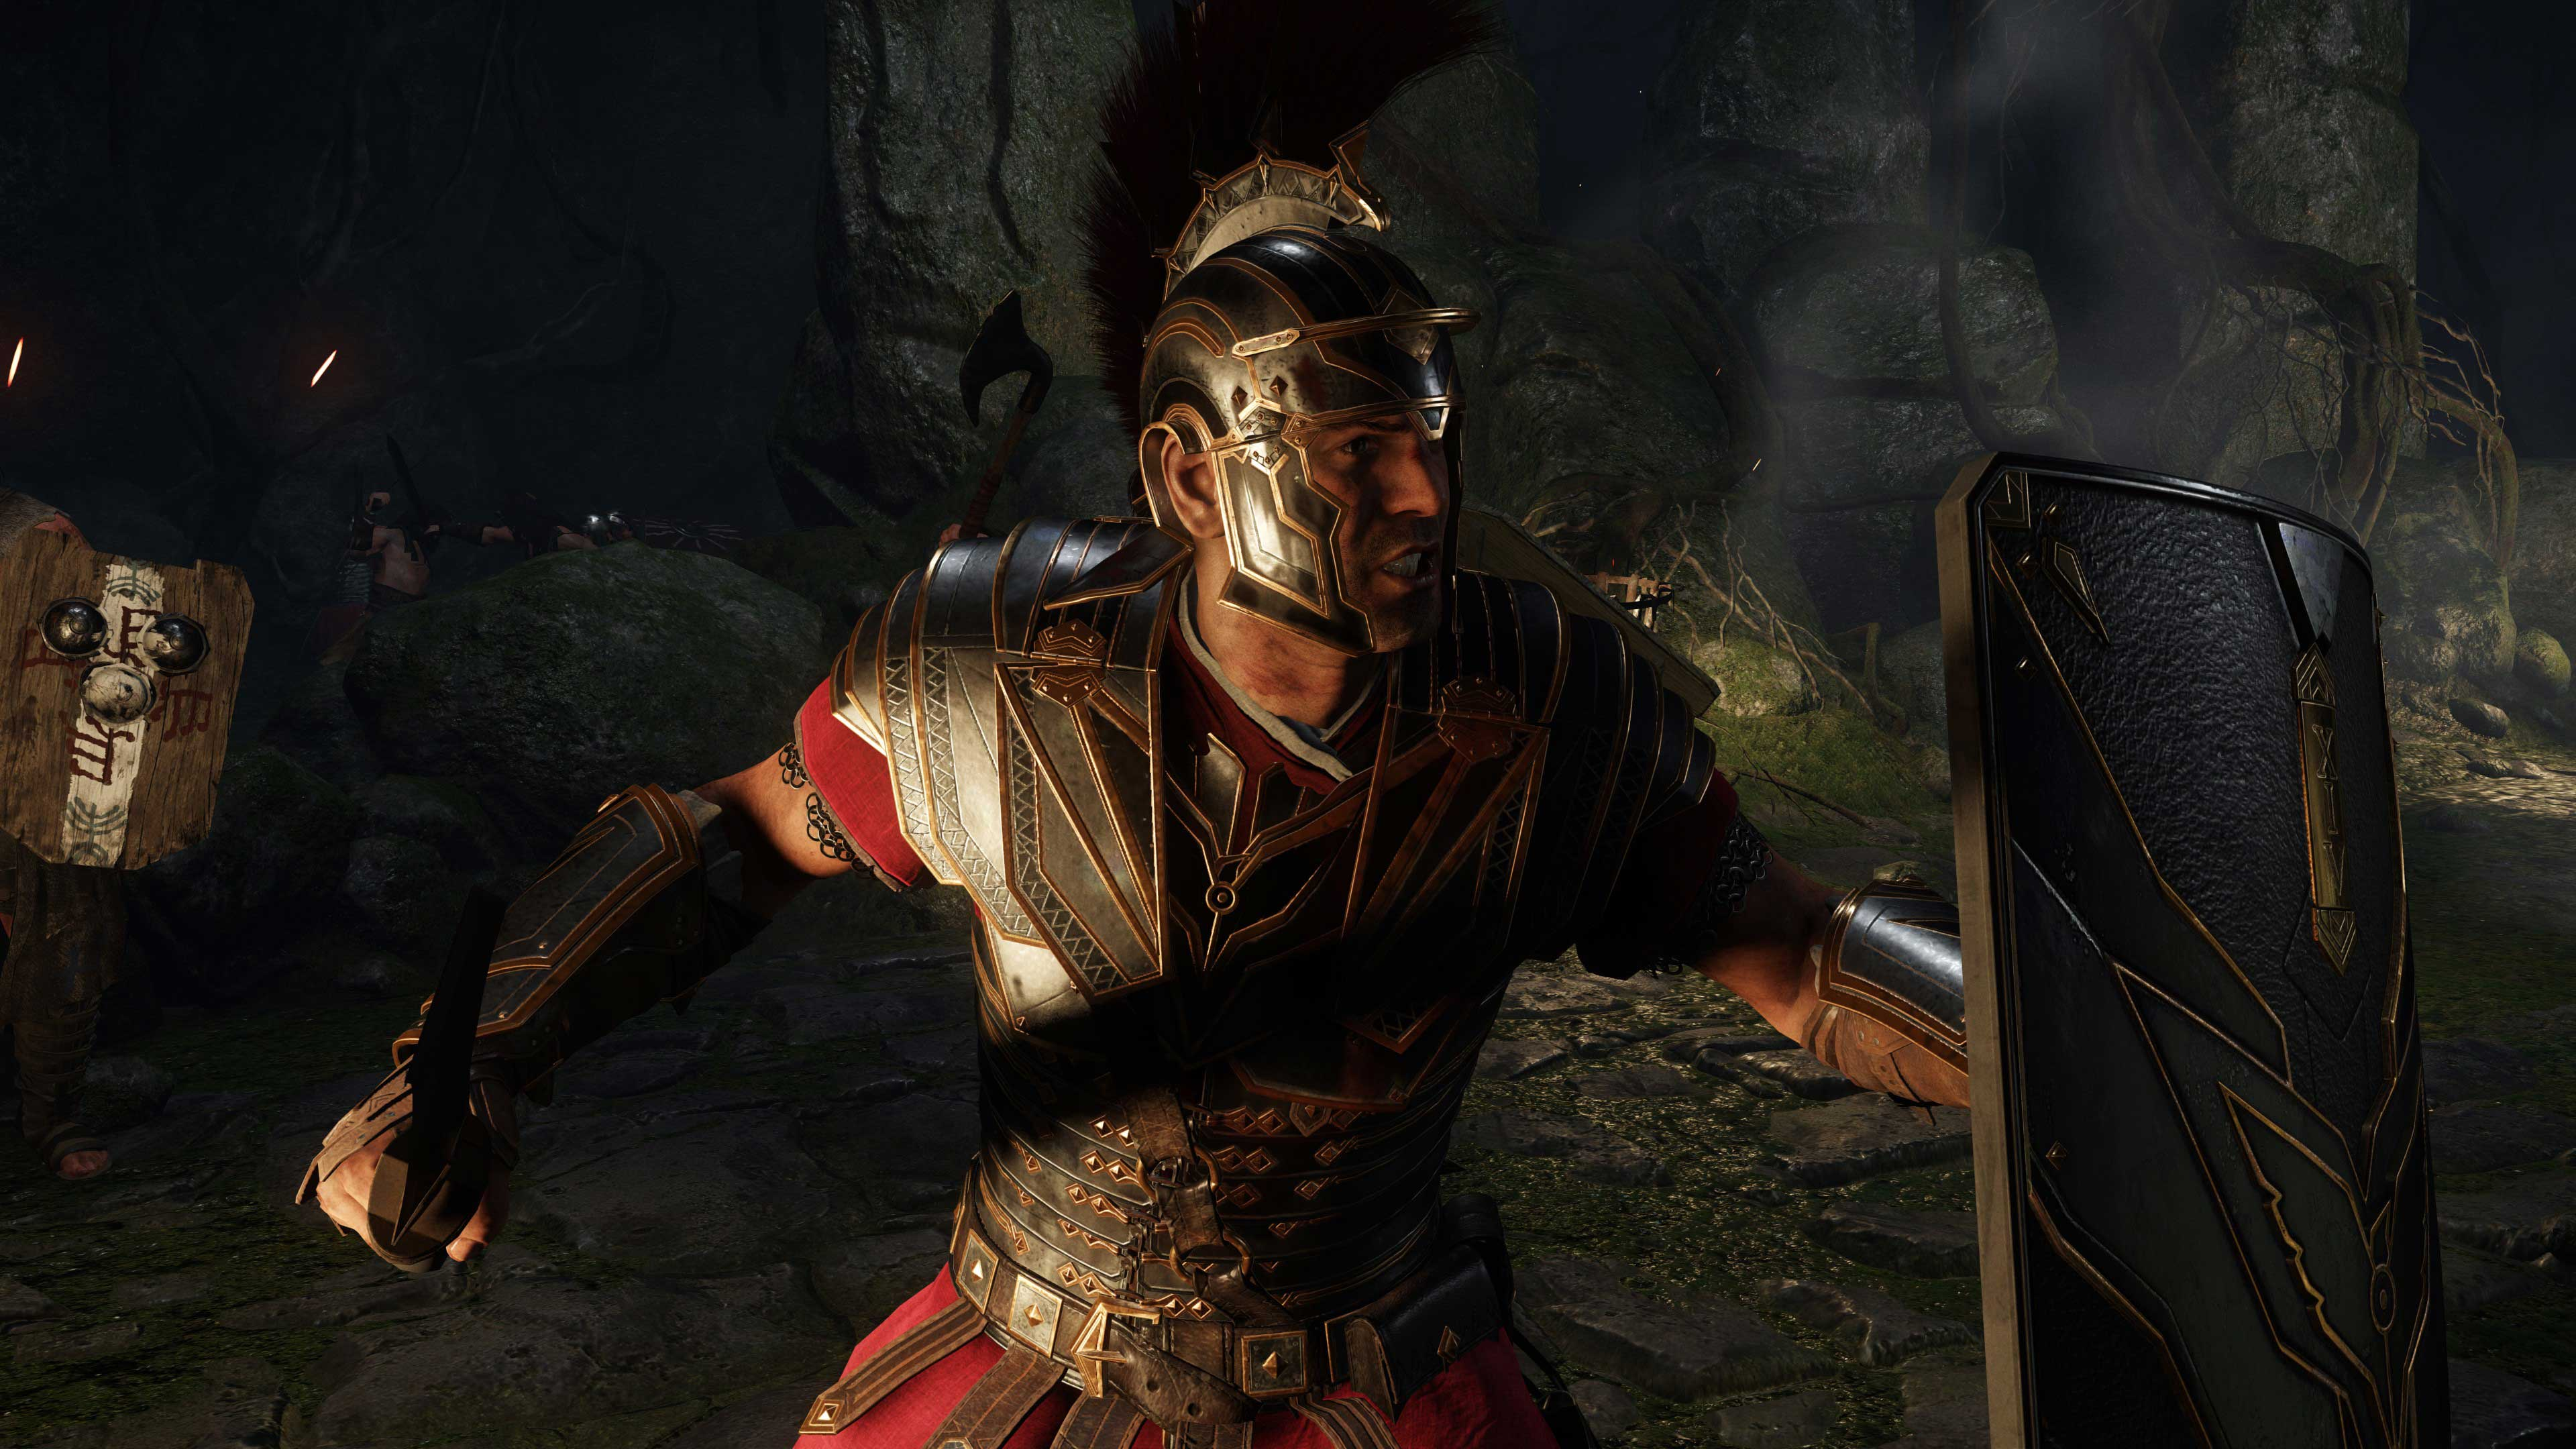 Ryse Son Of Rome Wallpaper: Index Of /wp-content/uploads/2014/09/